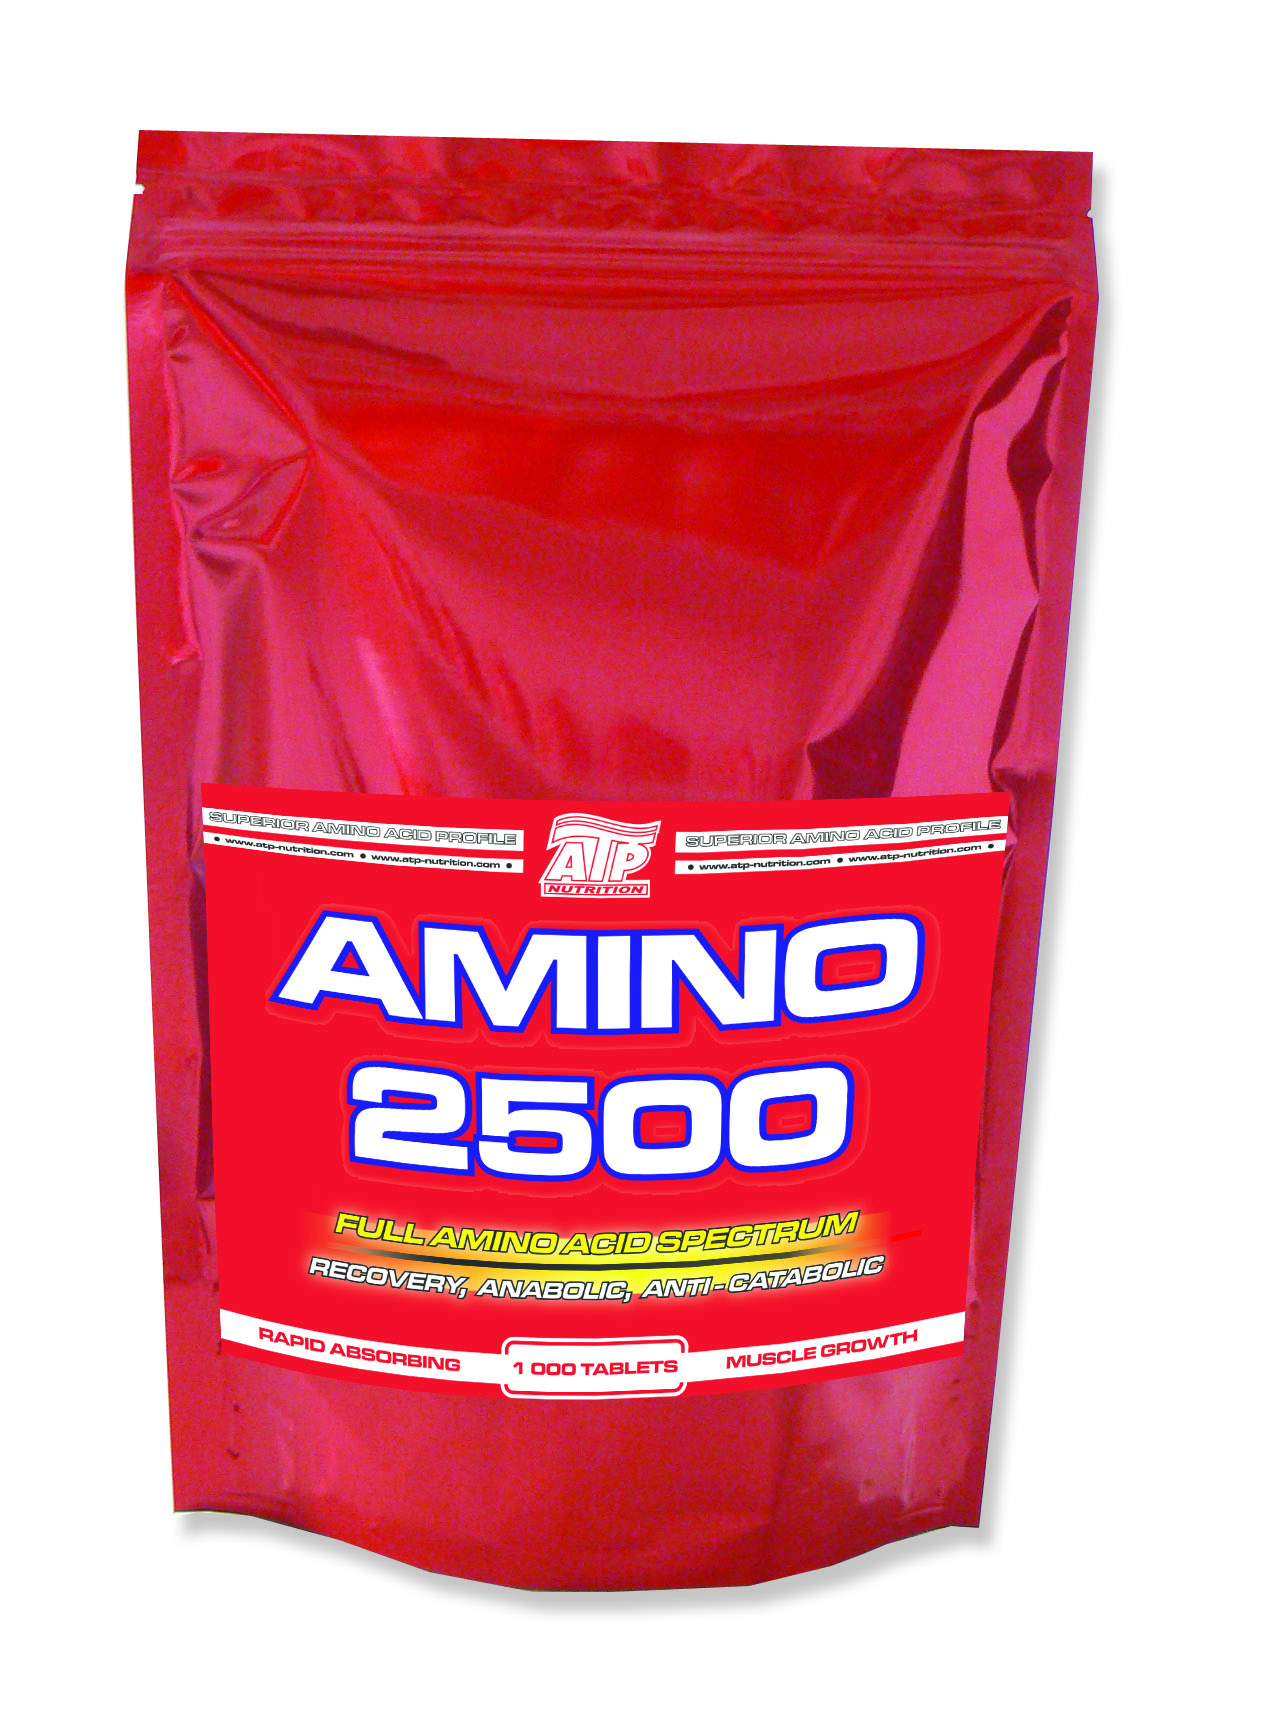 AMINO 2500_1000 TBL MP